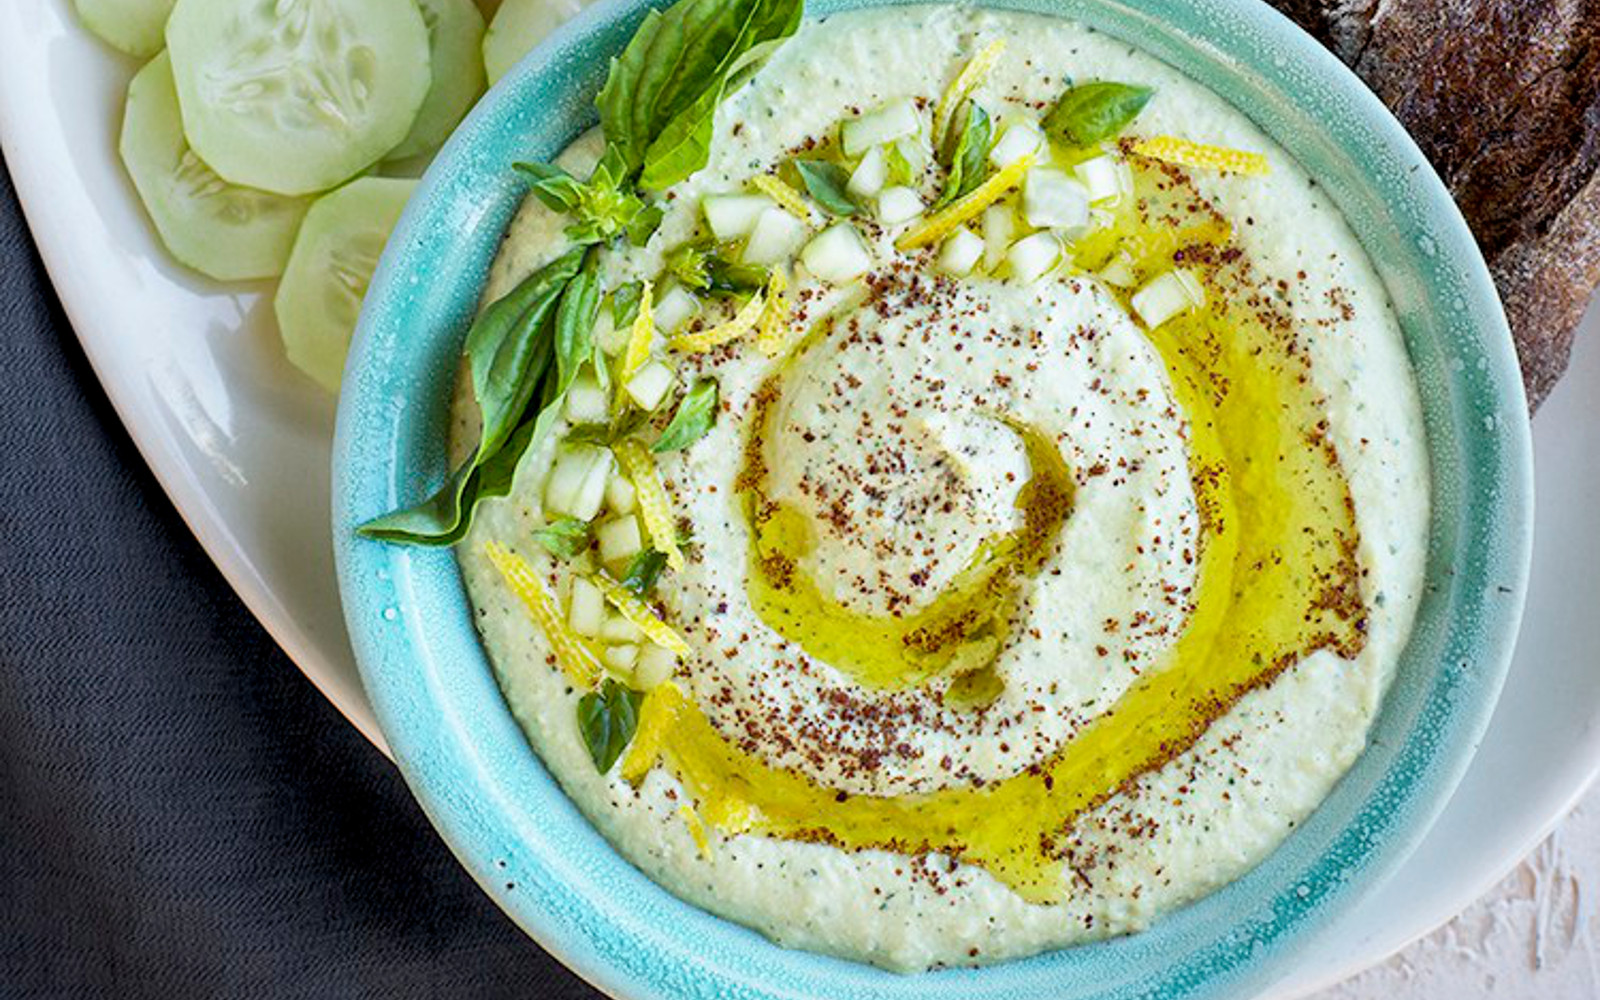 Vegan Sprouted Meyer Lemon Basil Hummus